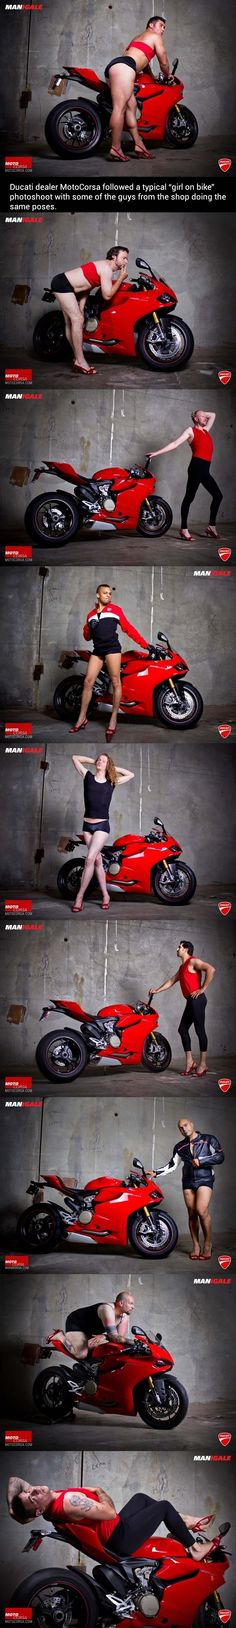 'Girl on bike' photoshoot // funny pictures - funny photos - funny images - funny pics - funny quotes - #lol #humor #funnypictures